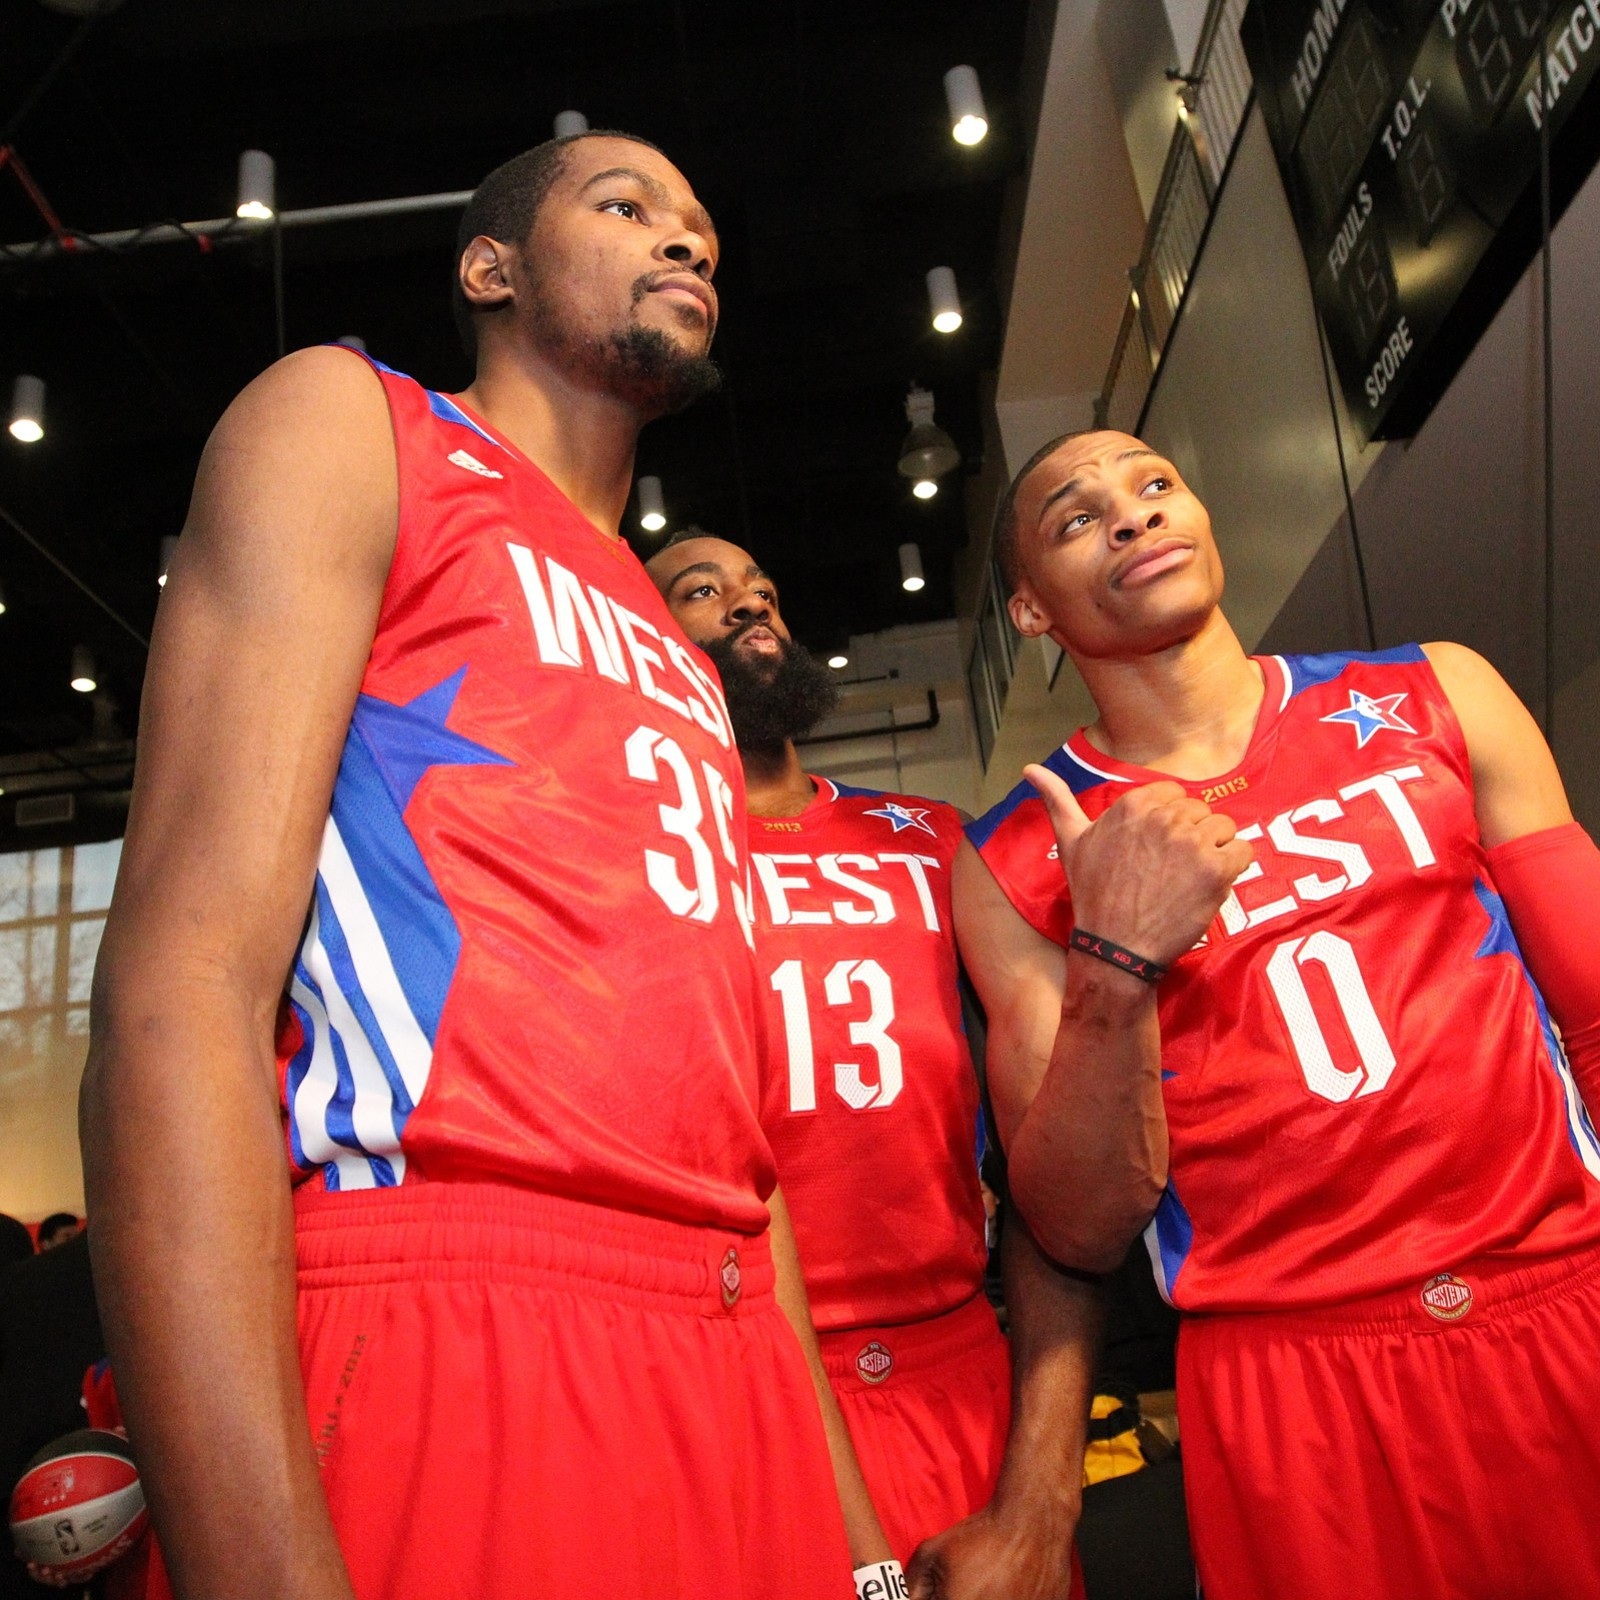 Kevin Durant All Star Game 2013 2013 NBA All St...